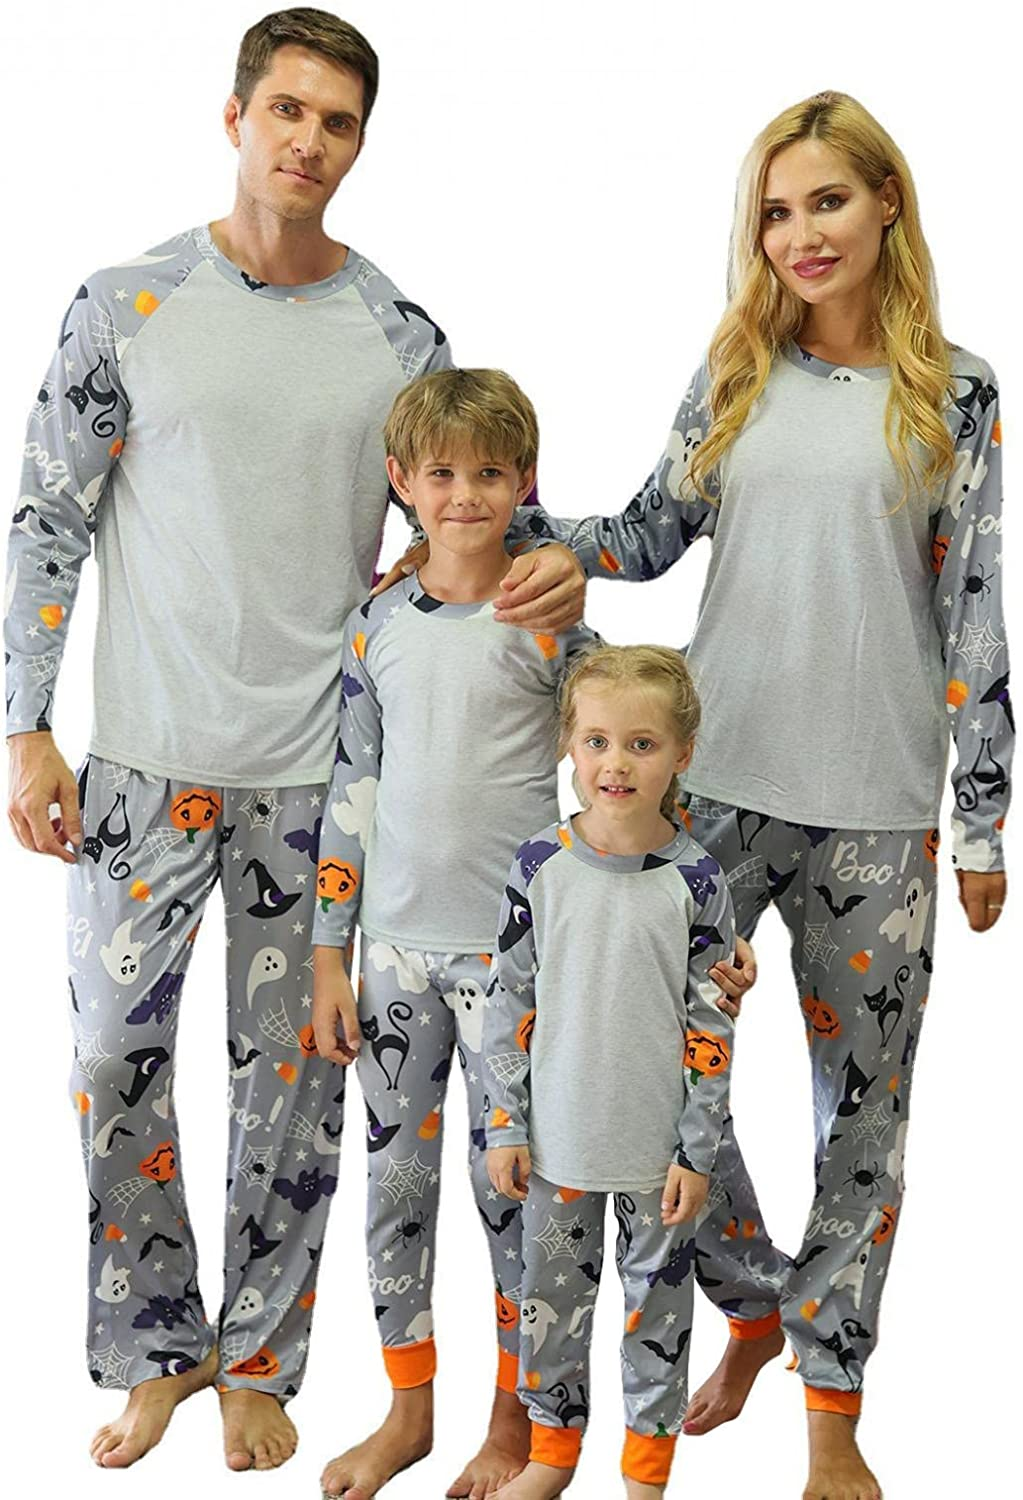 Fankle Family Pajamas Matching Sets - Pumpkin Halloween Year-end annual account Sleepwea wholesale